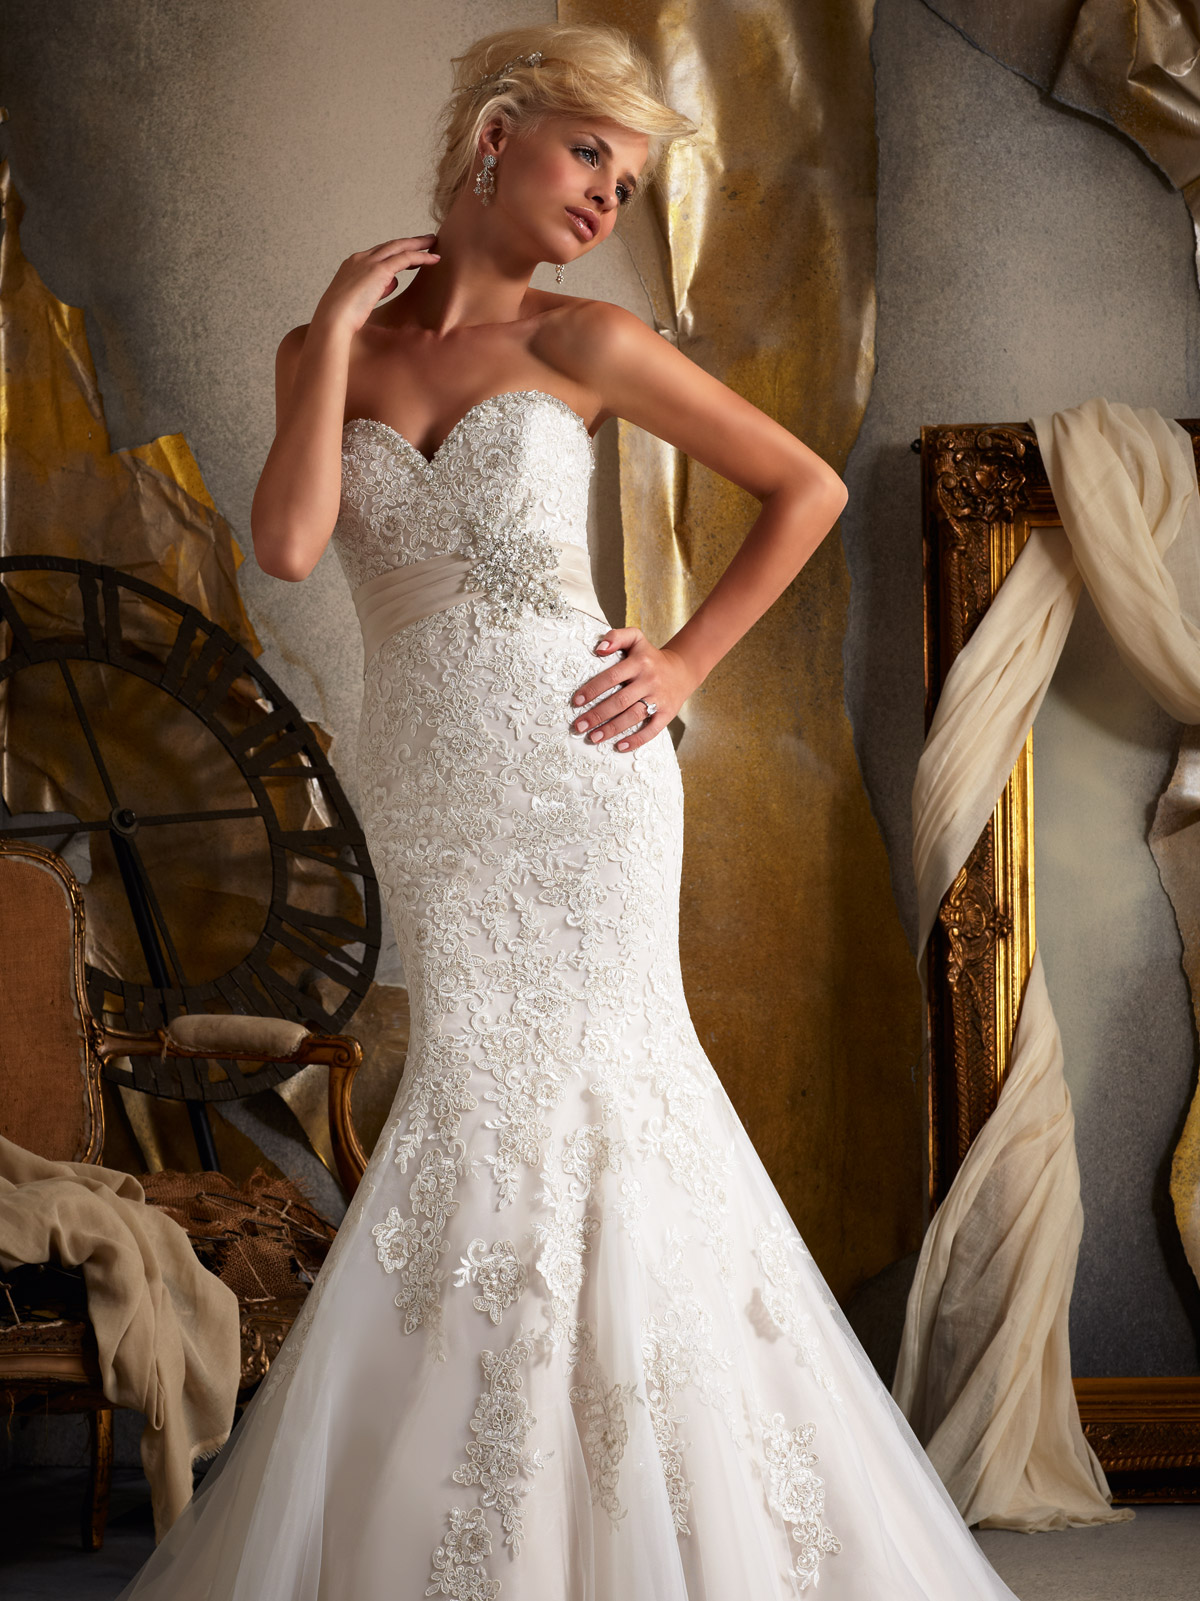 Sweetheart Fit And Flare Mori Lee Bridal Gown 1903|DimitraDesigns.com